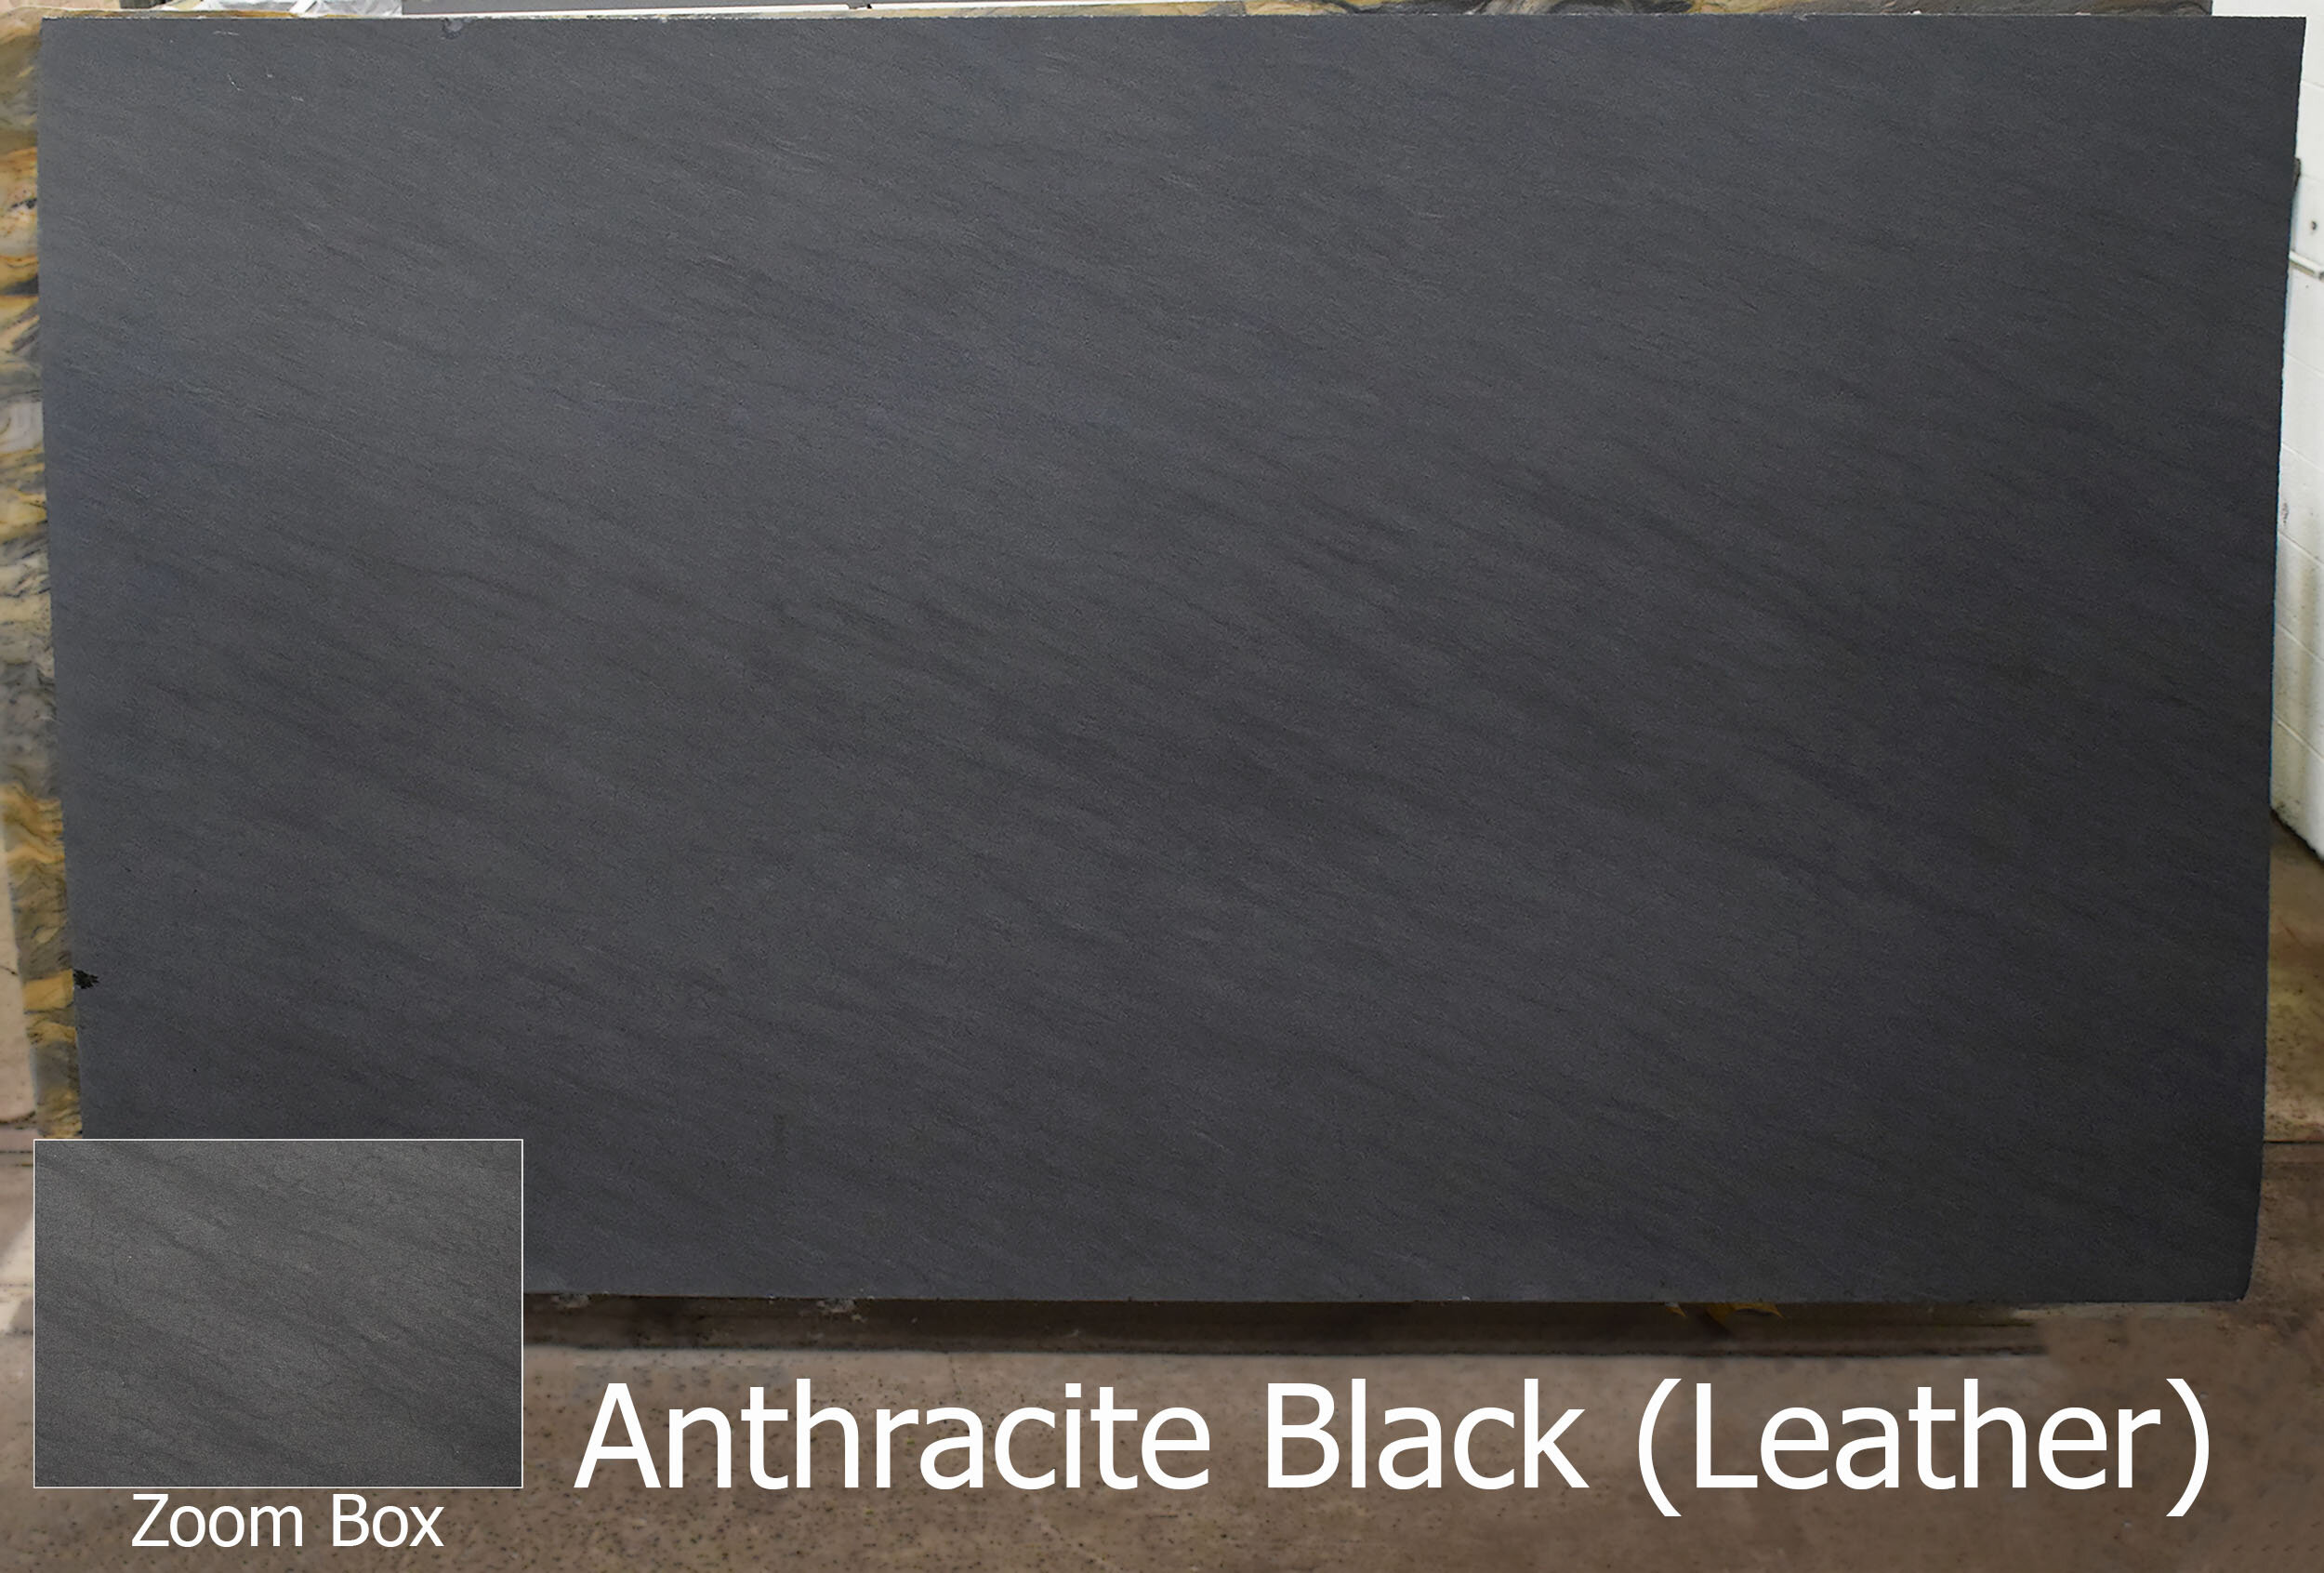 ANTHRACITE BLACK (LEATHER)